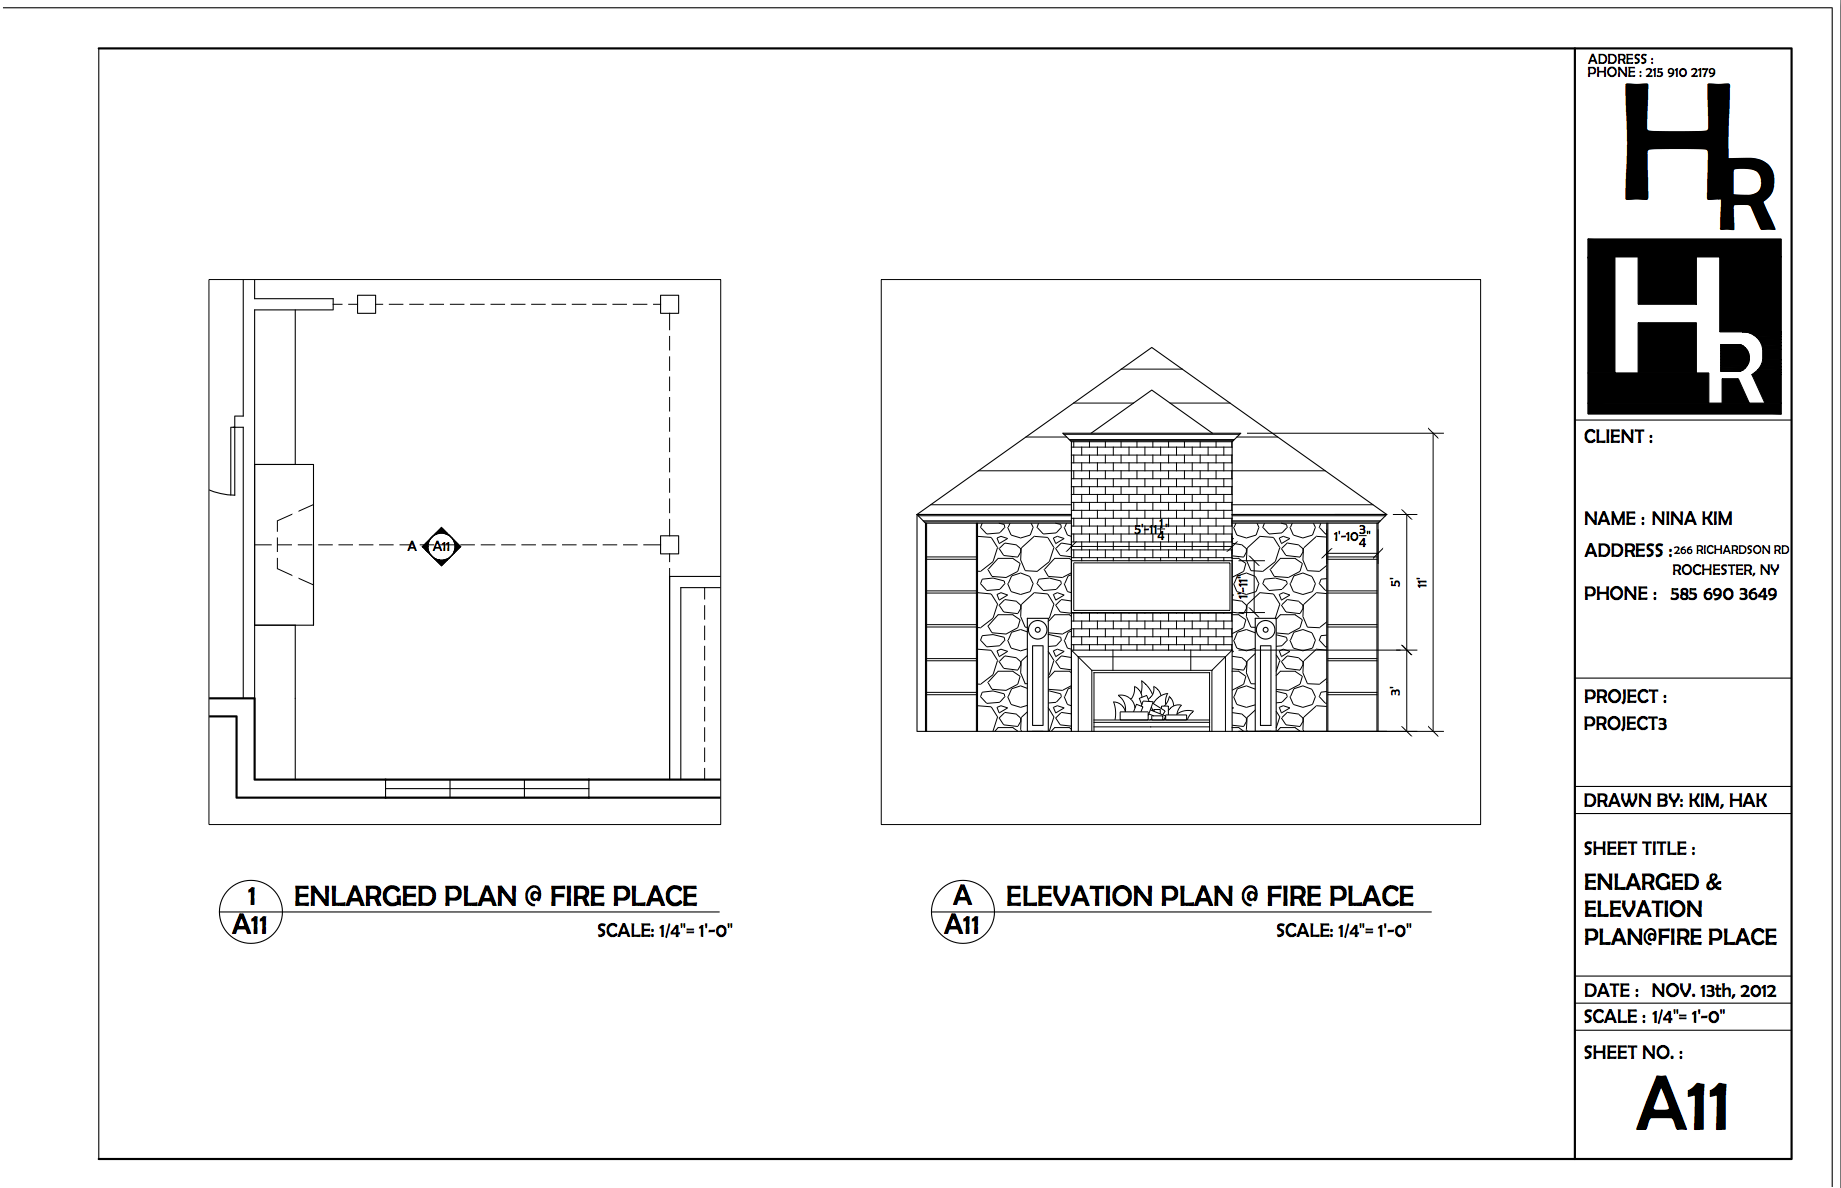 Stone Wall Elevation Cad : Fireplace elevation plan portfolio autocad pinterest